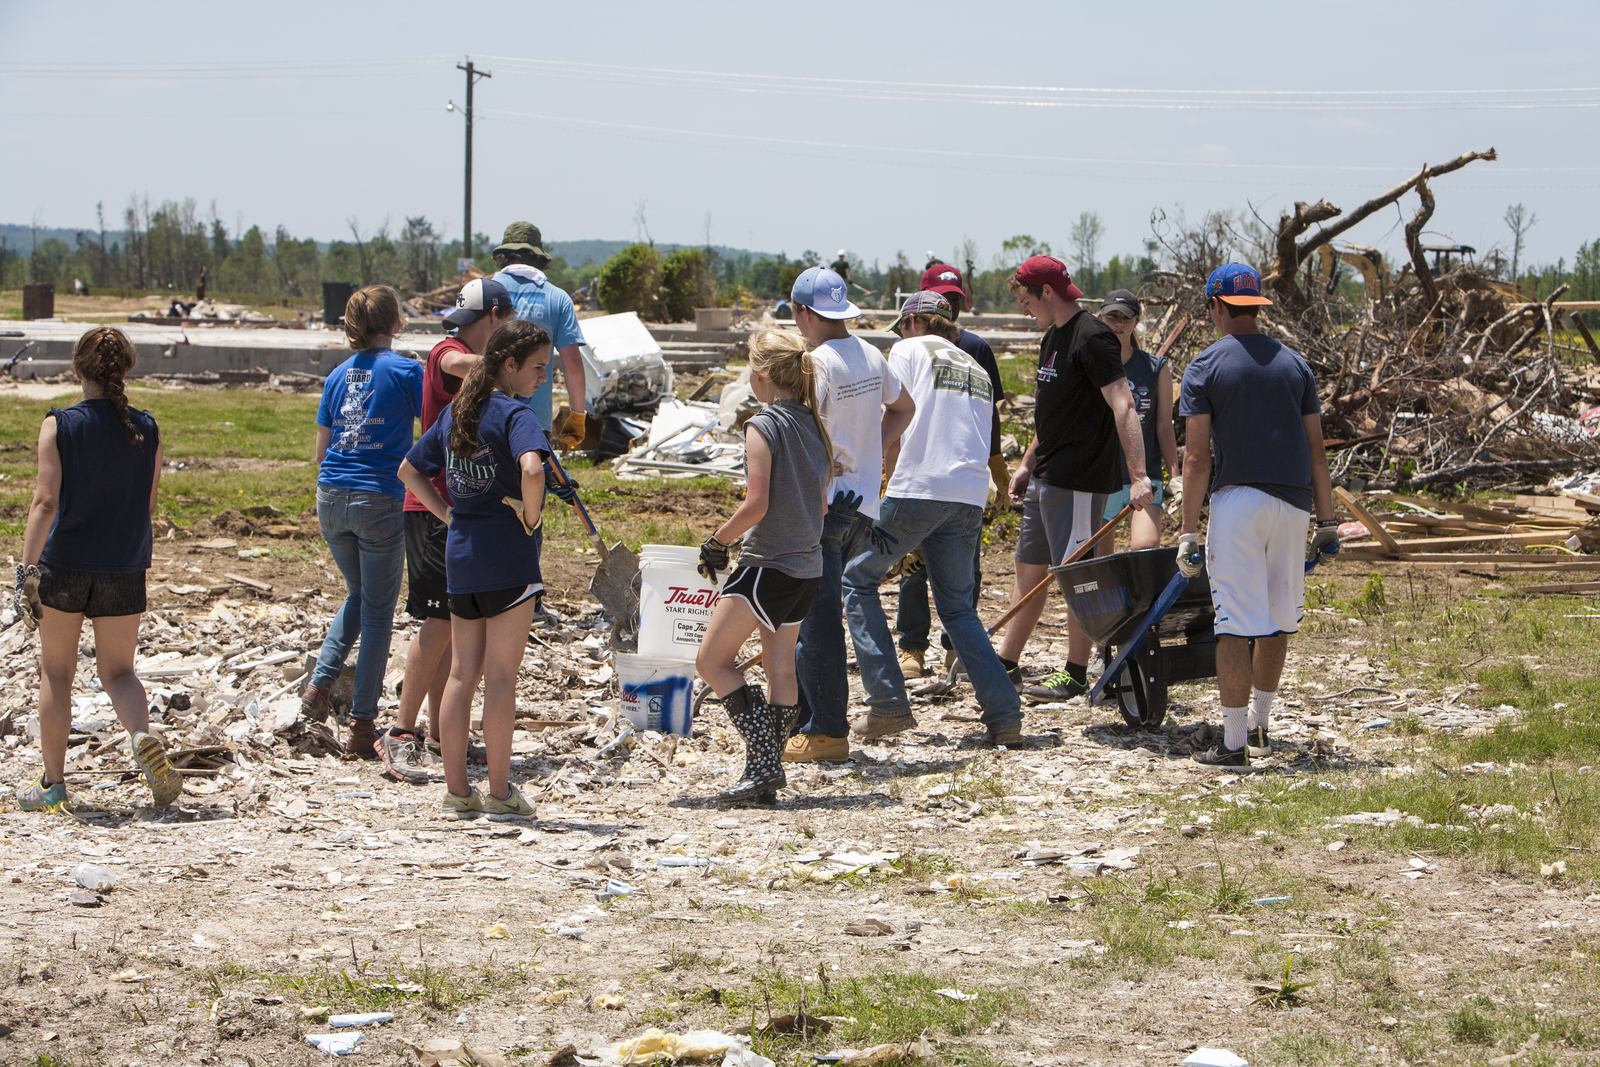 Vilonia, AR, May 21, 2014 – Team Rubicon volunteers remove debris from a home and property in Parkwood Meadows near Naylor Road after the home was destroyed by a tornado on April 27. FEMA supports Voluntary Organizations Active in Disaster (VOAD) as they help survivors recover from natural disasters. Photo by Christopher Mardorf / FEMA